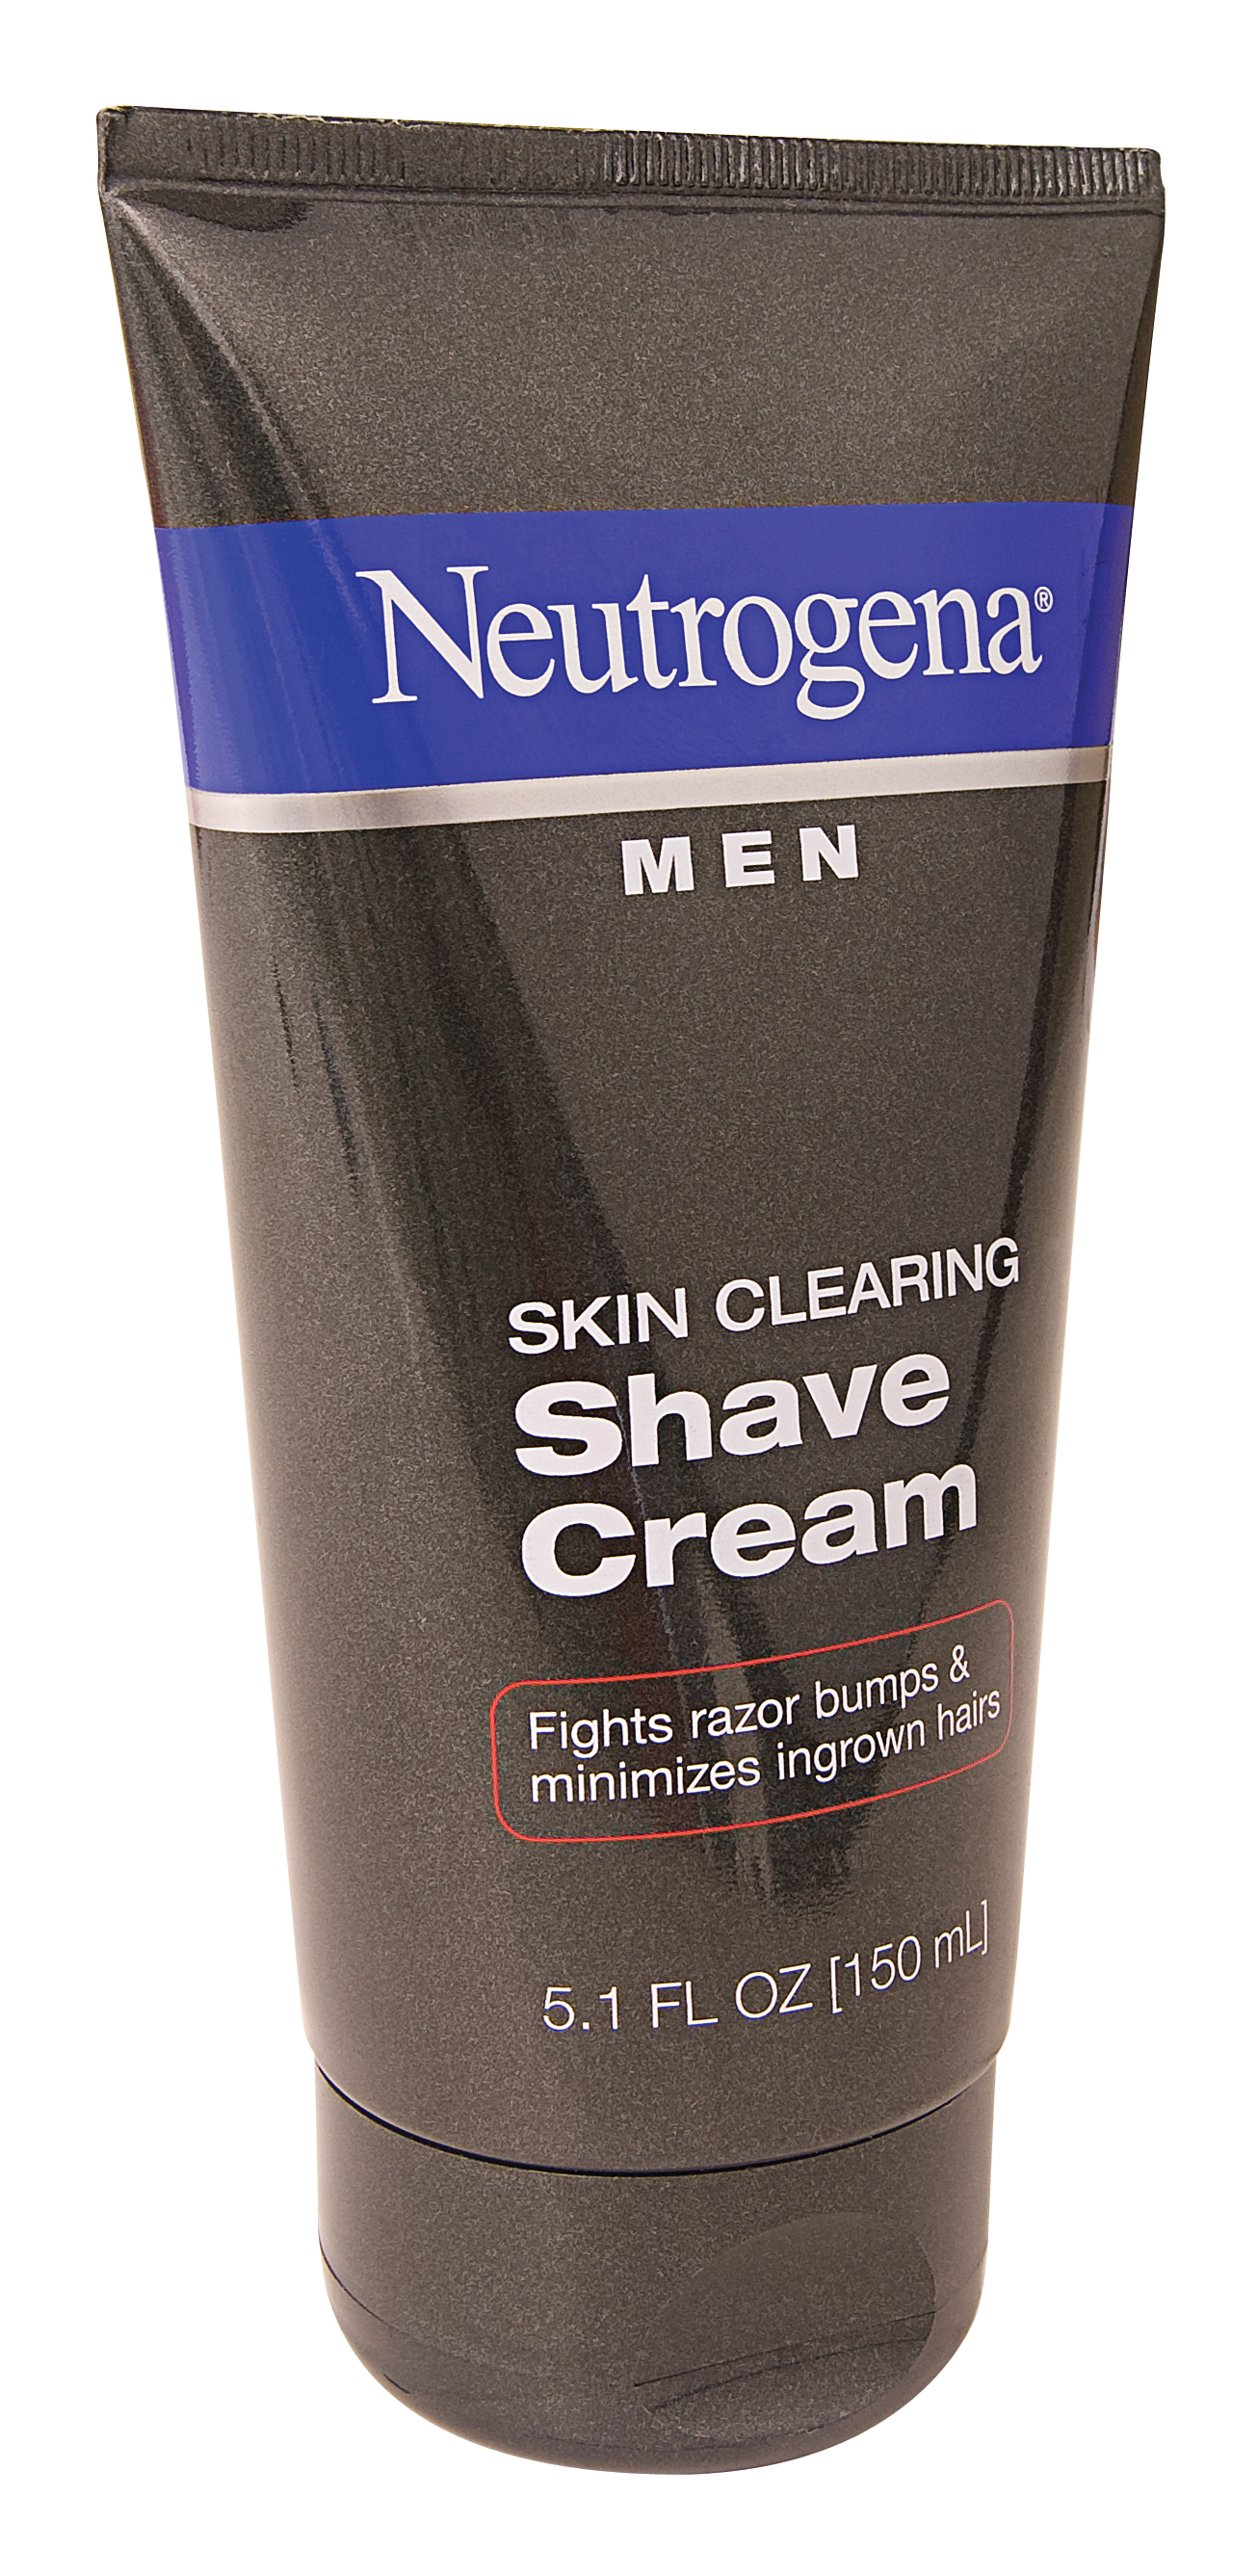 57577_Ng_MenSkinClearShaveCrm_150ml_Tube_3D